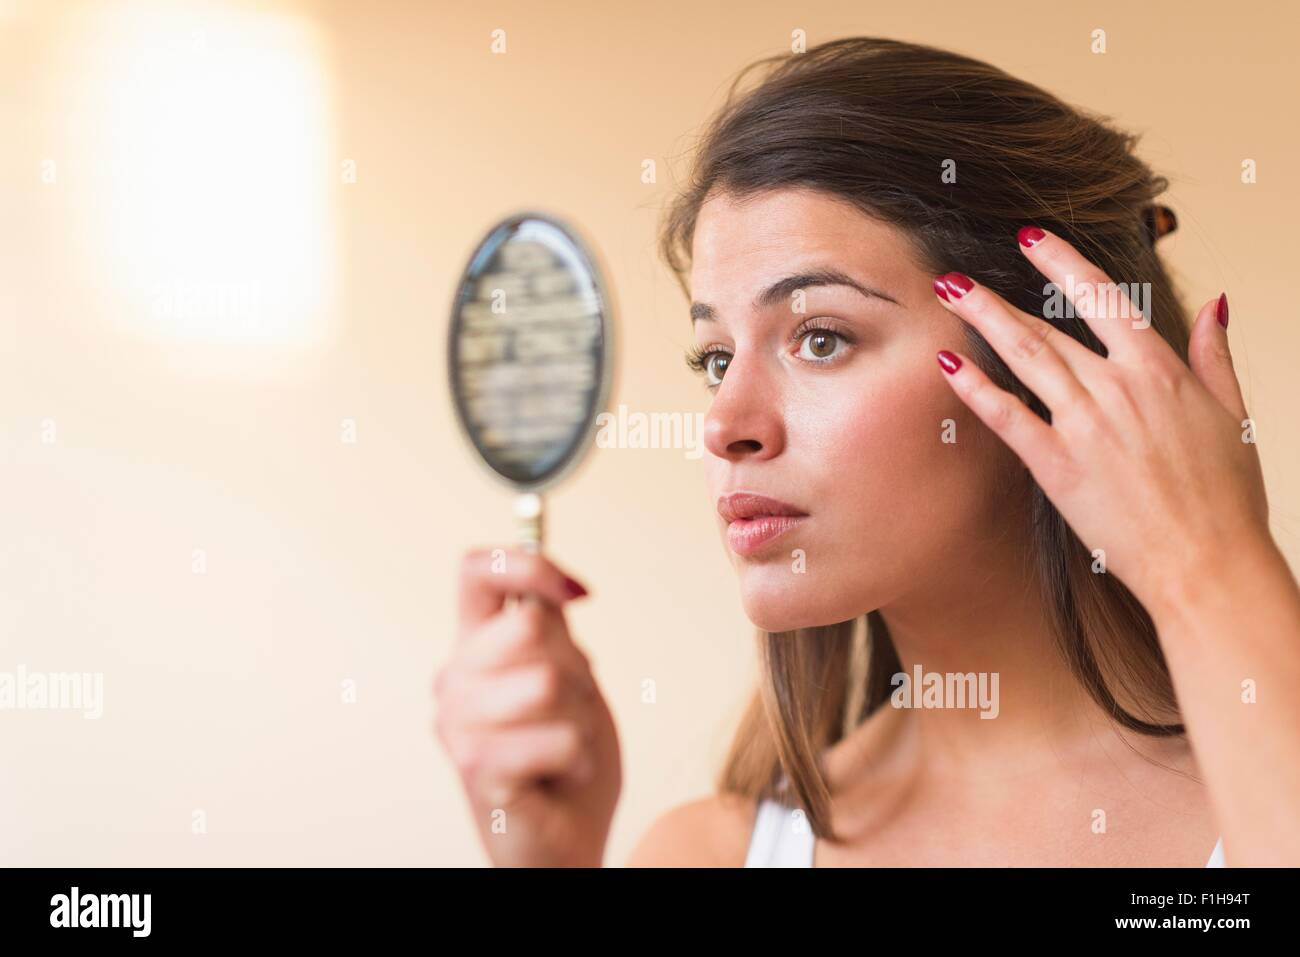 Young woman looking in hand mirror - Stock Image